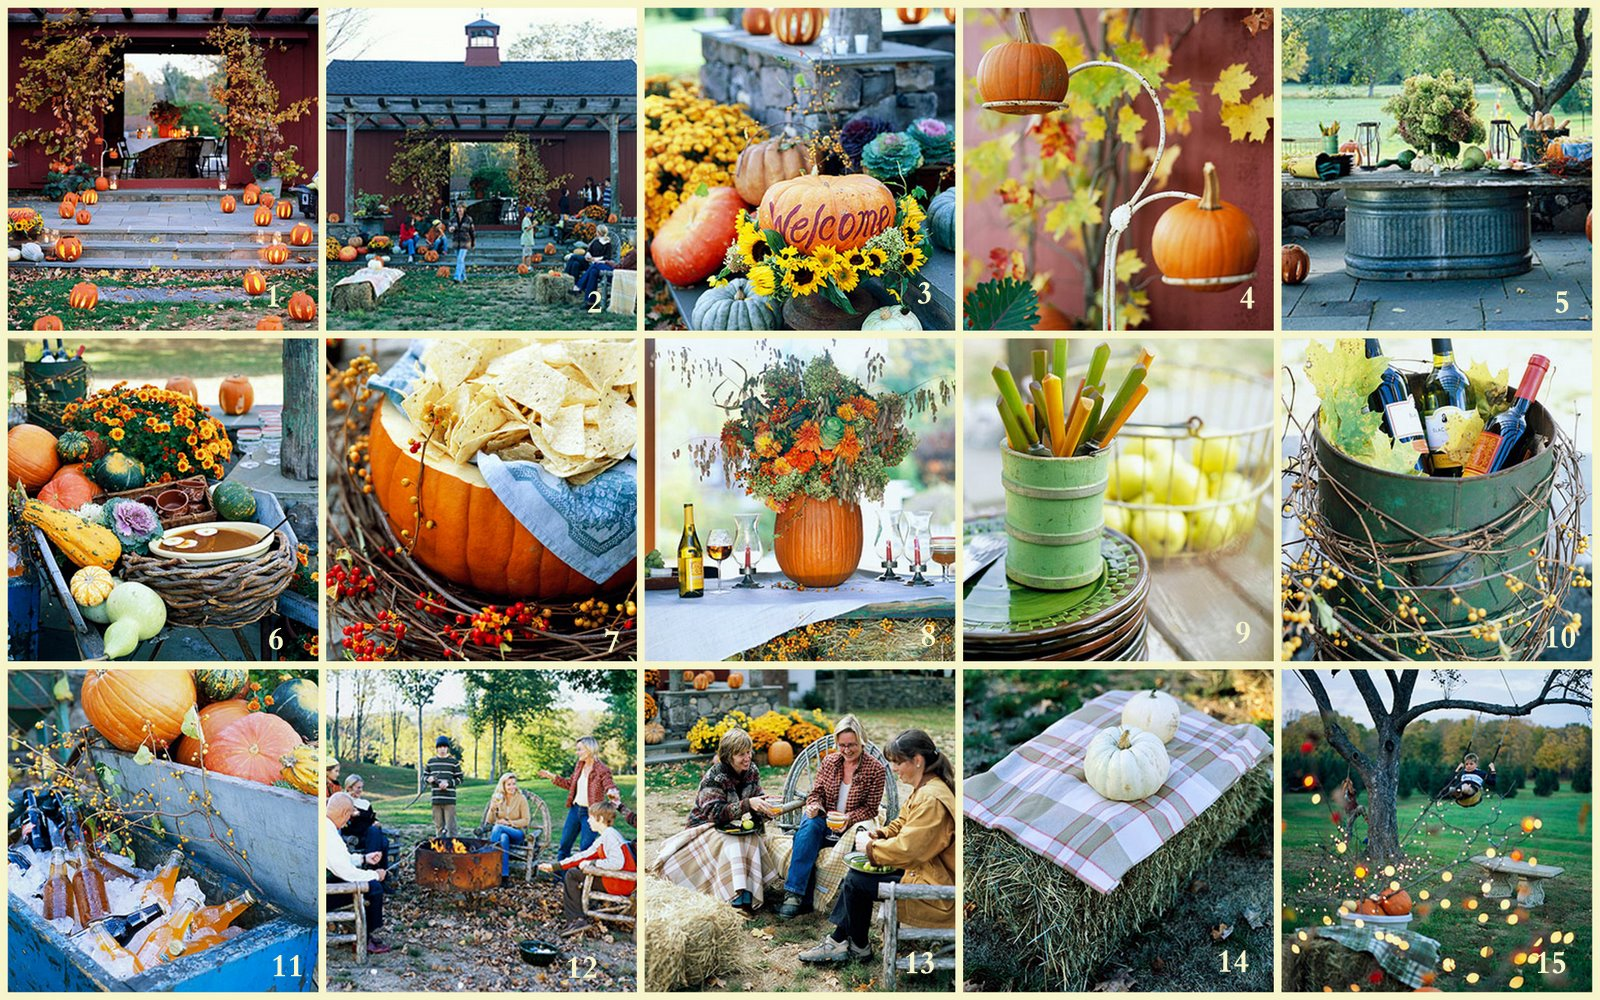 Fall Backyard Party Ideas : Celebrate Fall with these simple garden harvest ideas sure to bring